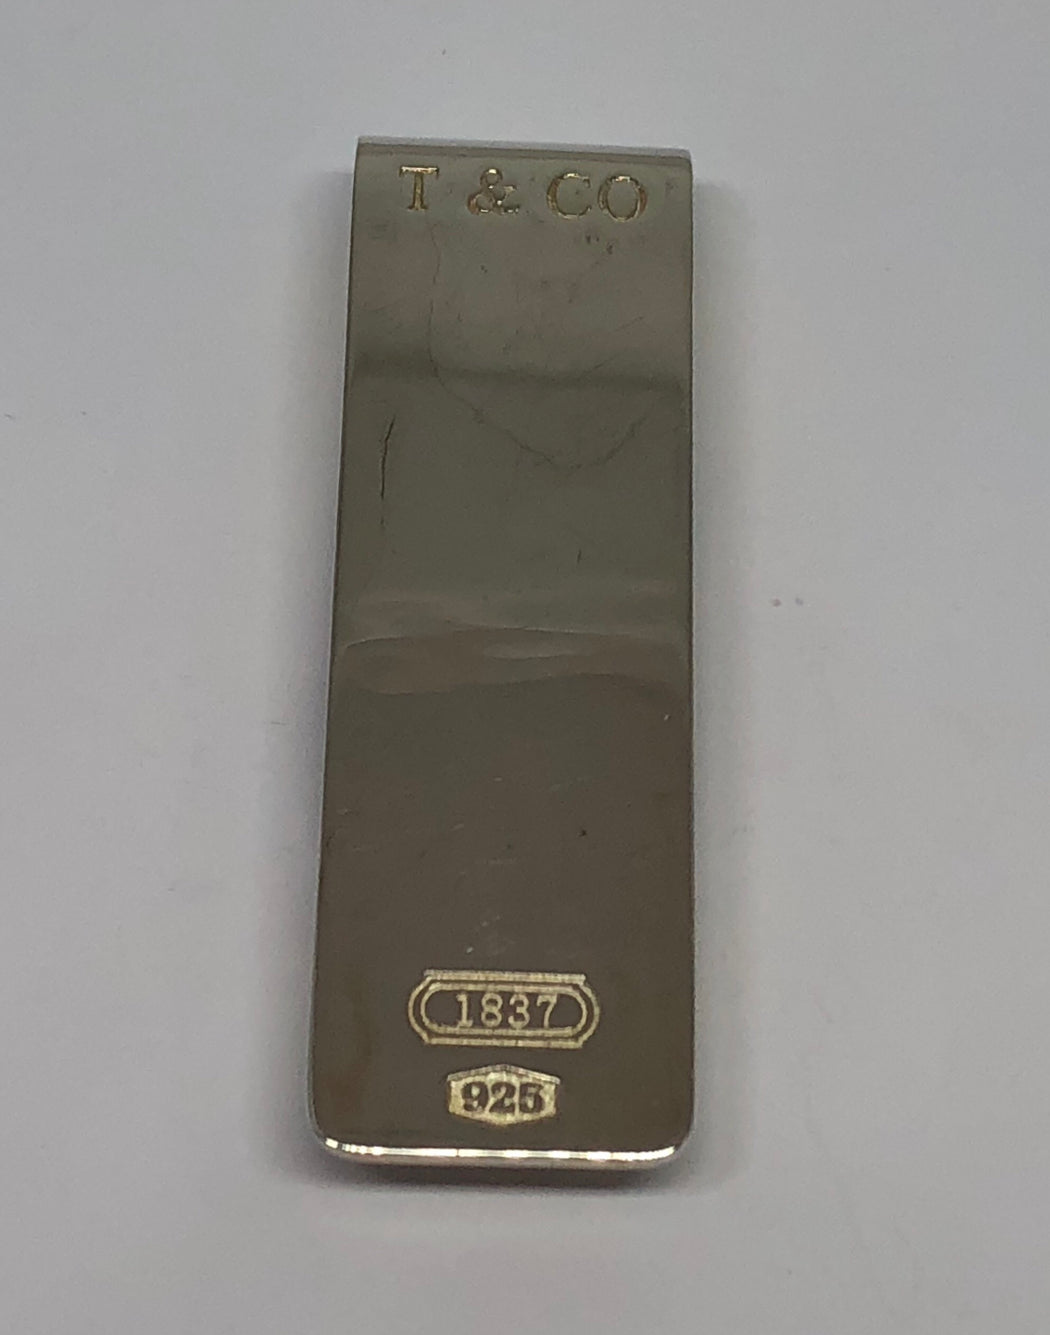 Tiffany & Co 1837 Sterling Silver Money Clip - Queen May